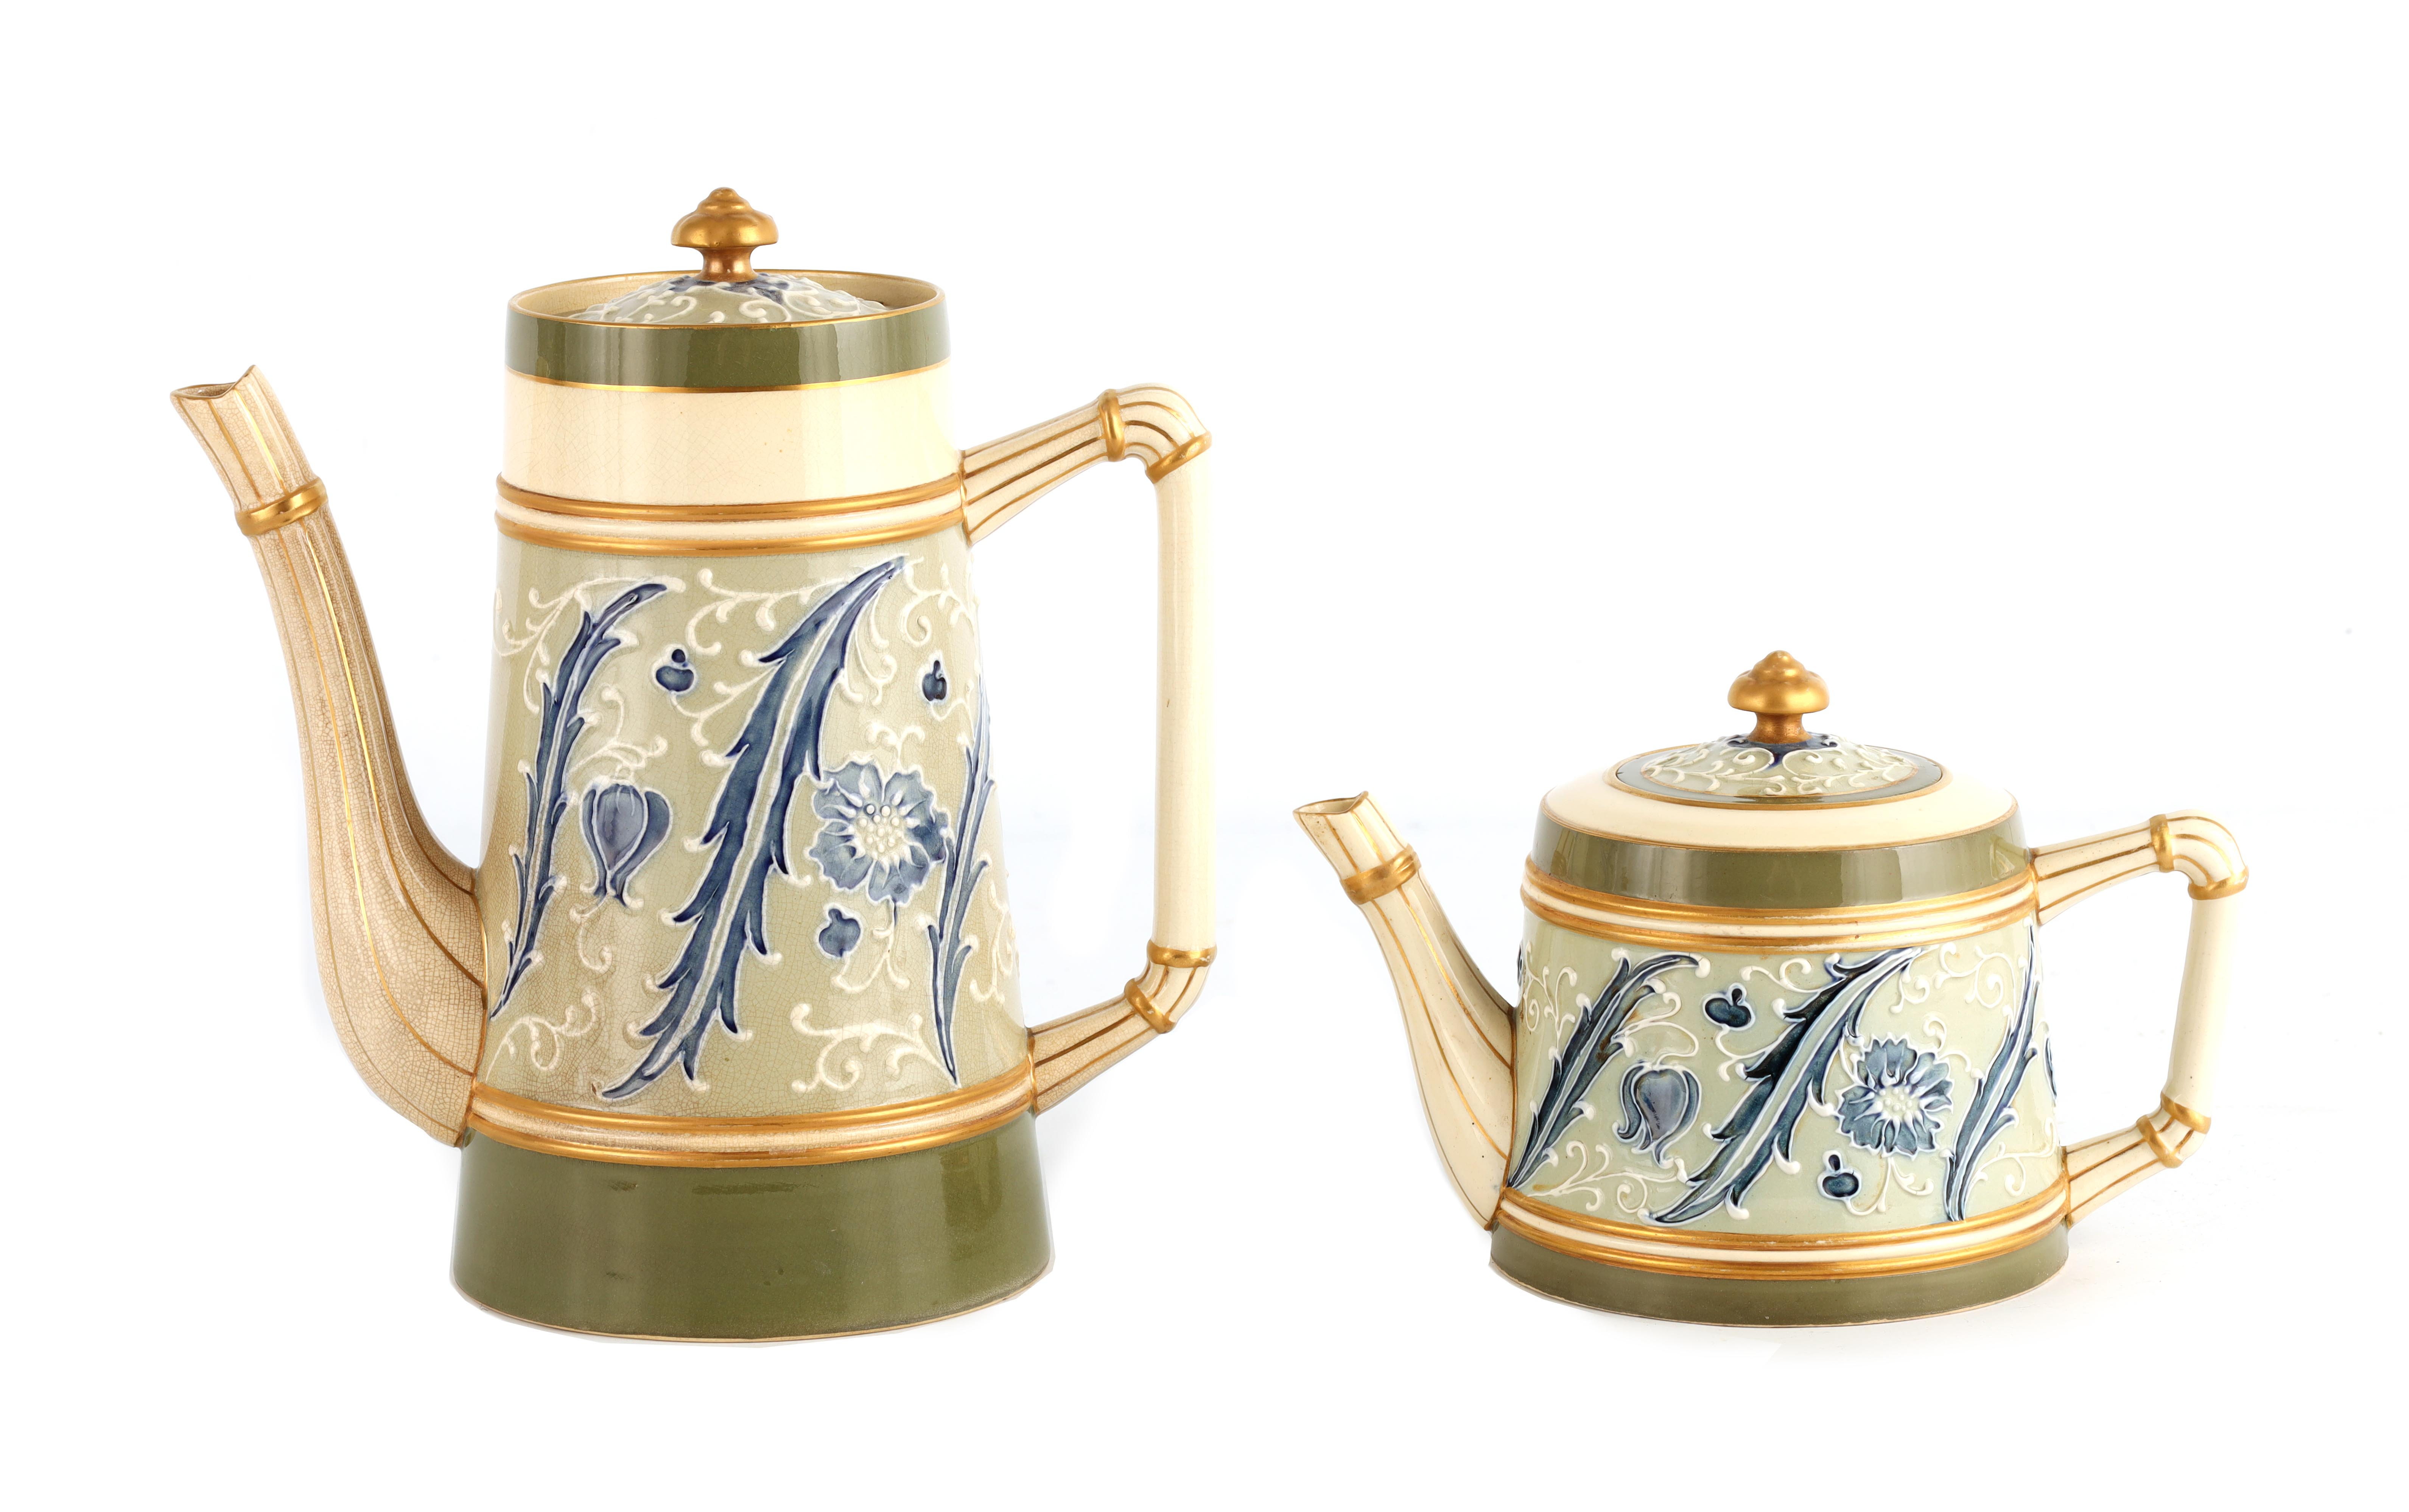 AN EARLY MACINTYRE BURSLEM TAPERING COFFEE POT AND MATCHING TEAPOT decorated in the Sicilian